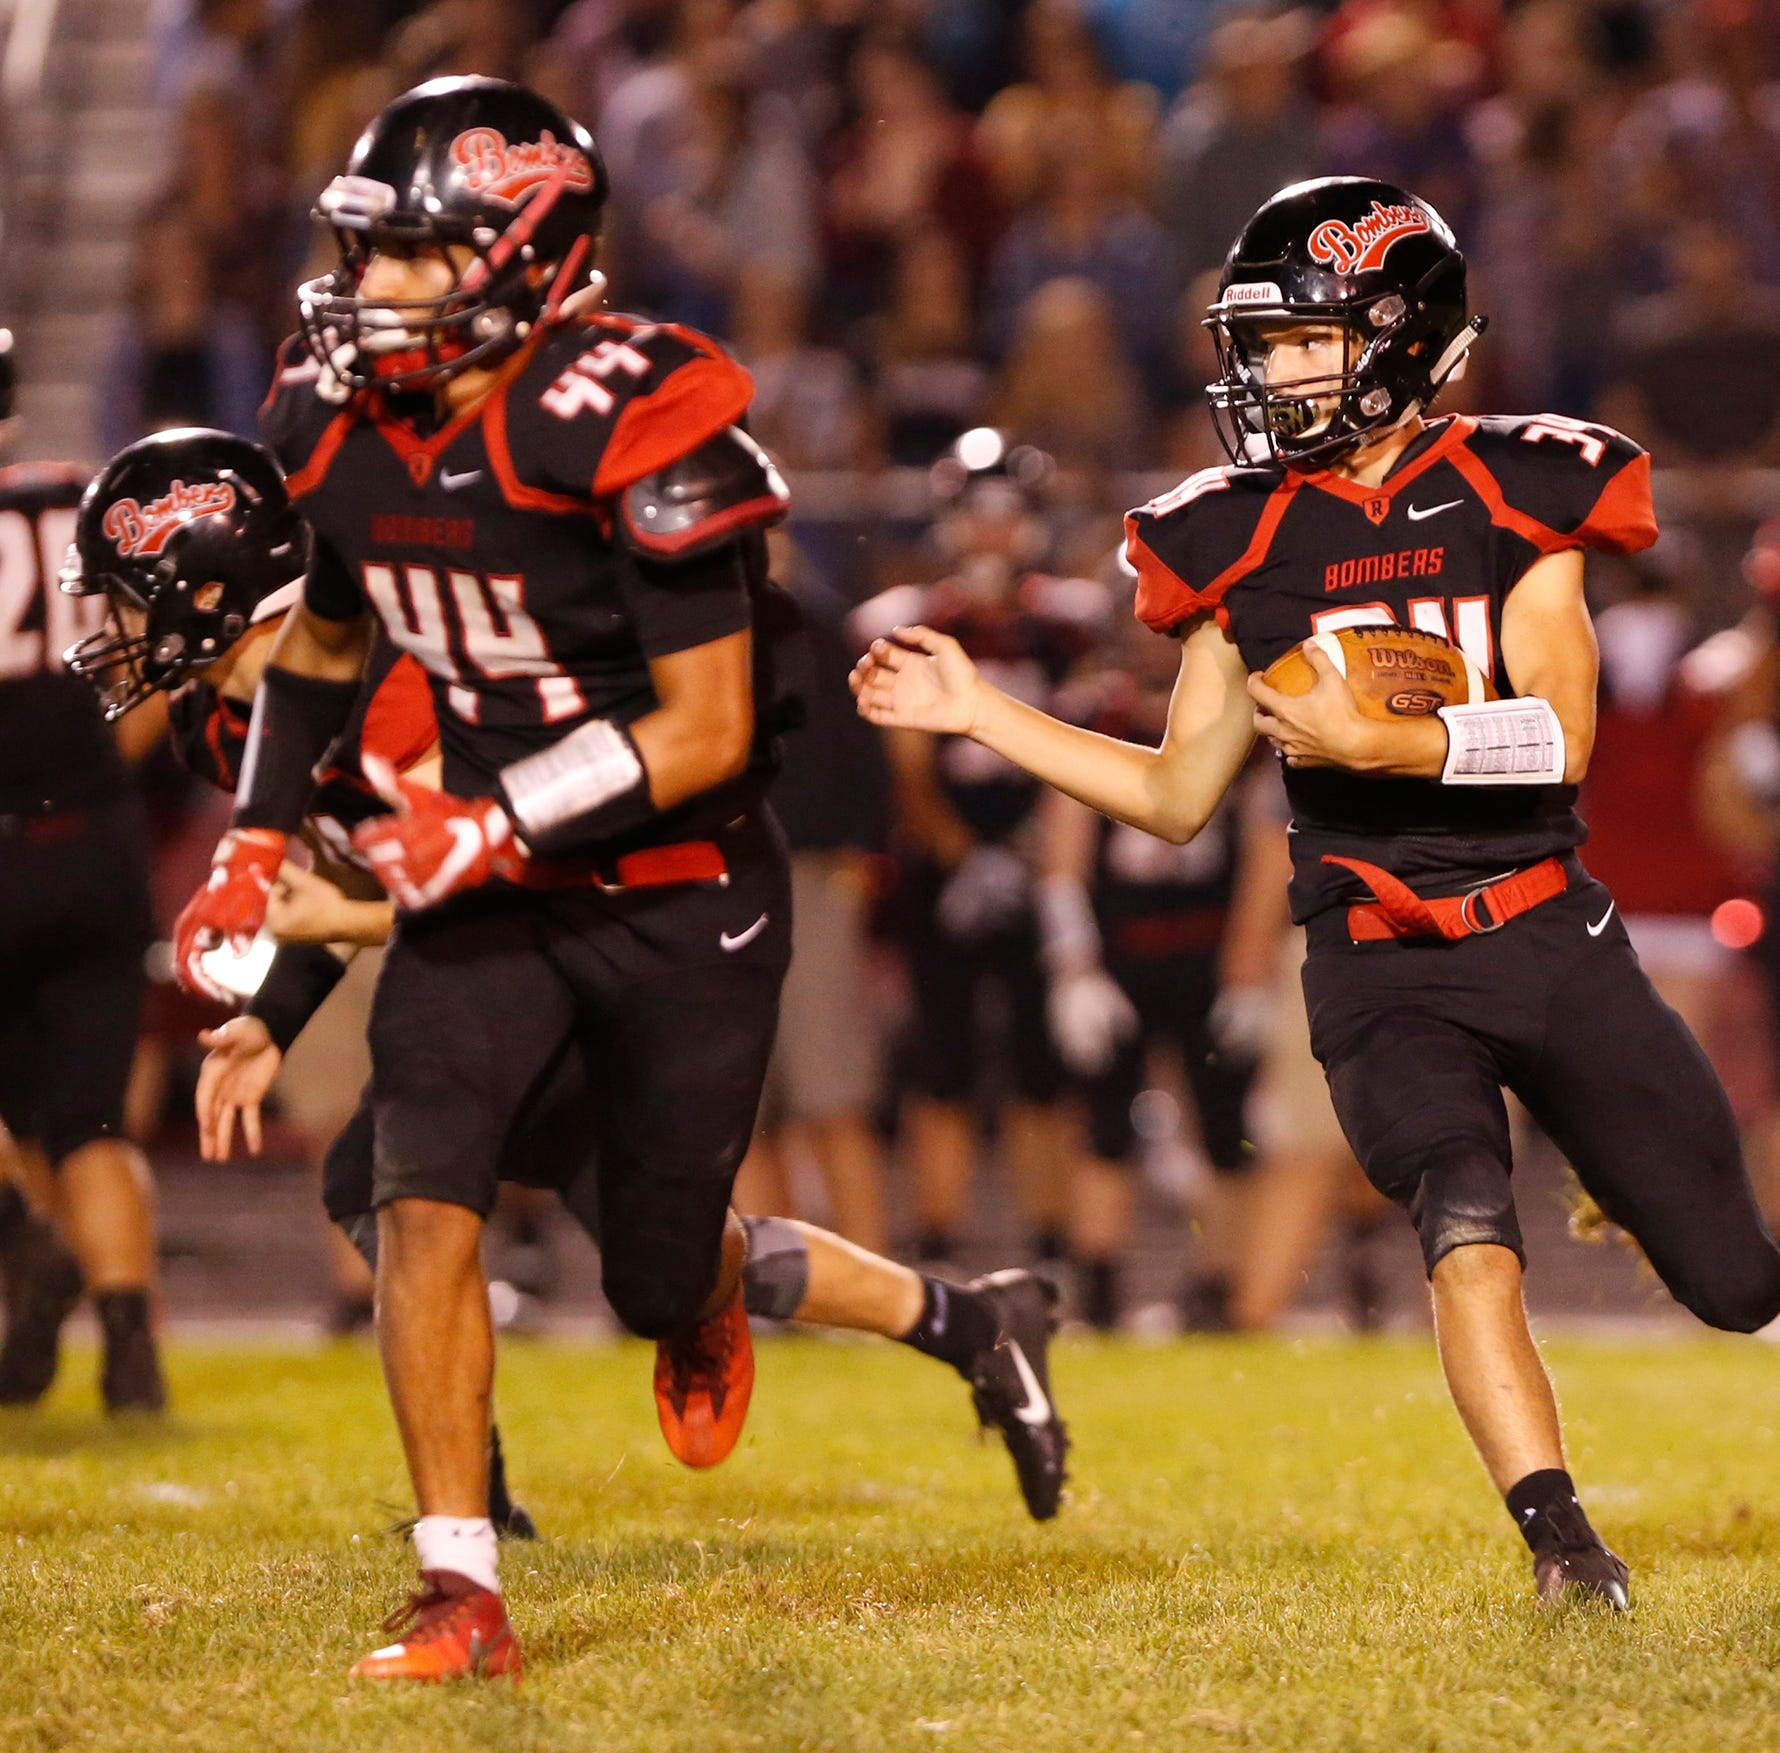 Addison Wilmington of Rensselaer runs behind the block of teammate Jose Hernandez in the third quarter against West Lafayette Friday, September 14, 2018, in Rensselaer. West Lafayette defeated Rensselaer 69-14.